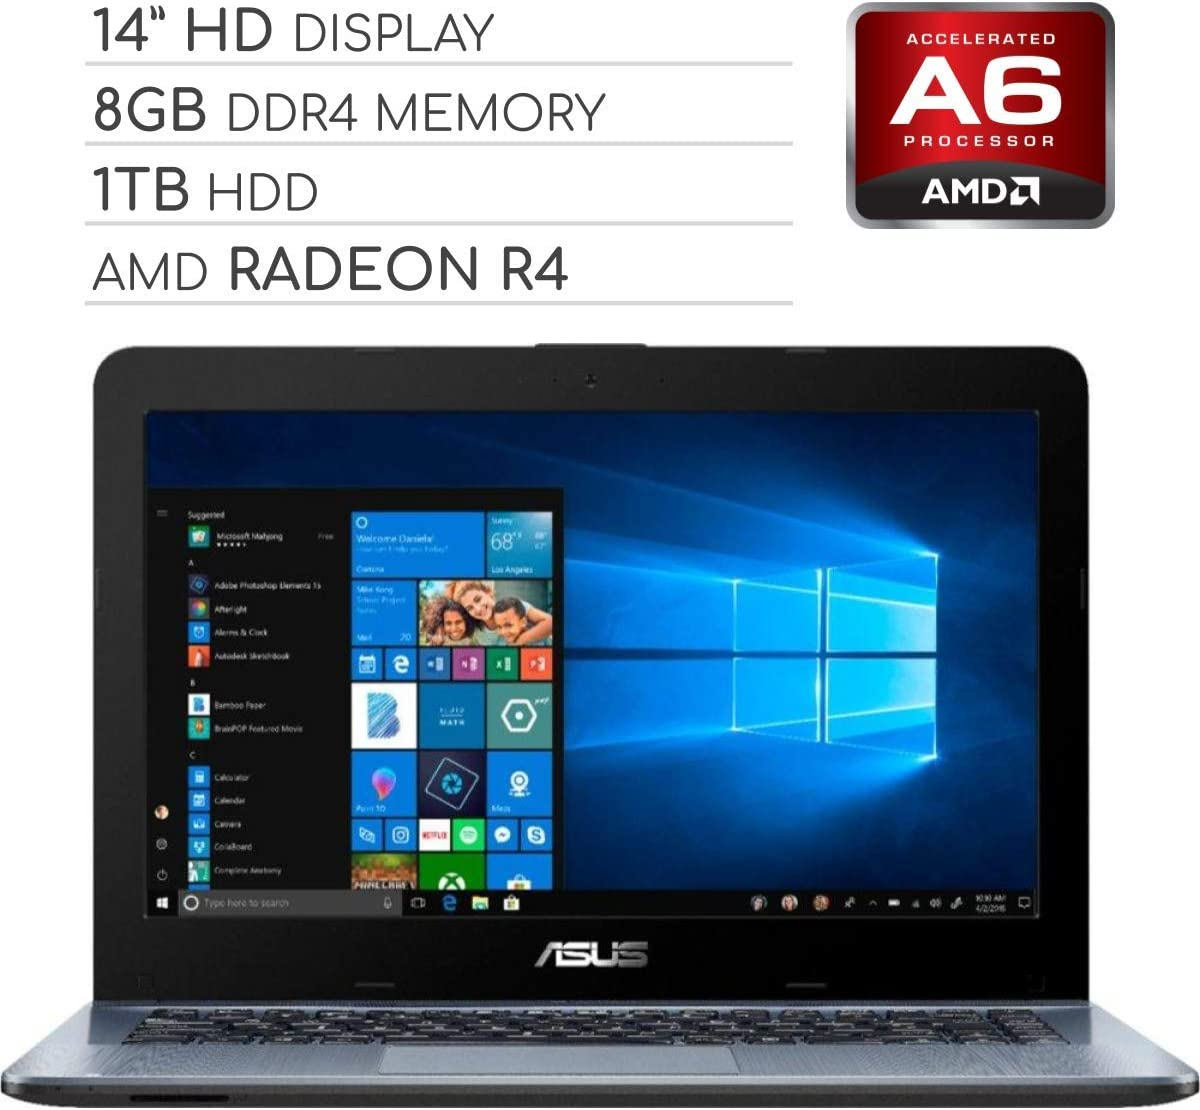 ASUS Vivobook 2019 Premium 14 HD Non-Touch Laptop Notebook Computer, 2-Core AMD A6 2.6GHz, 8GB DDR4 RAM, 1TB HDD, No DVD, Wi-Fi|Bluetooth|Webcam|HDMI|VGA, Windows 10